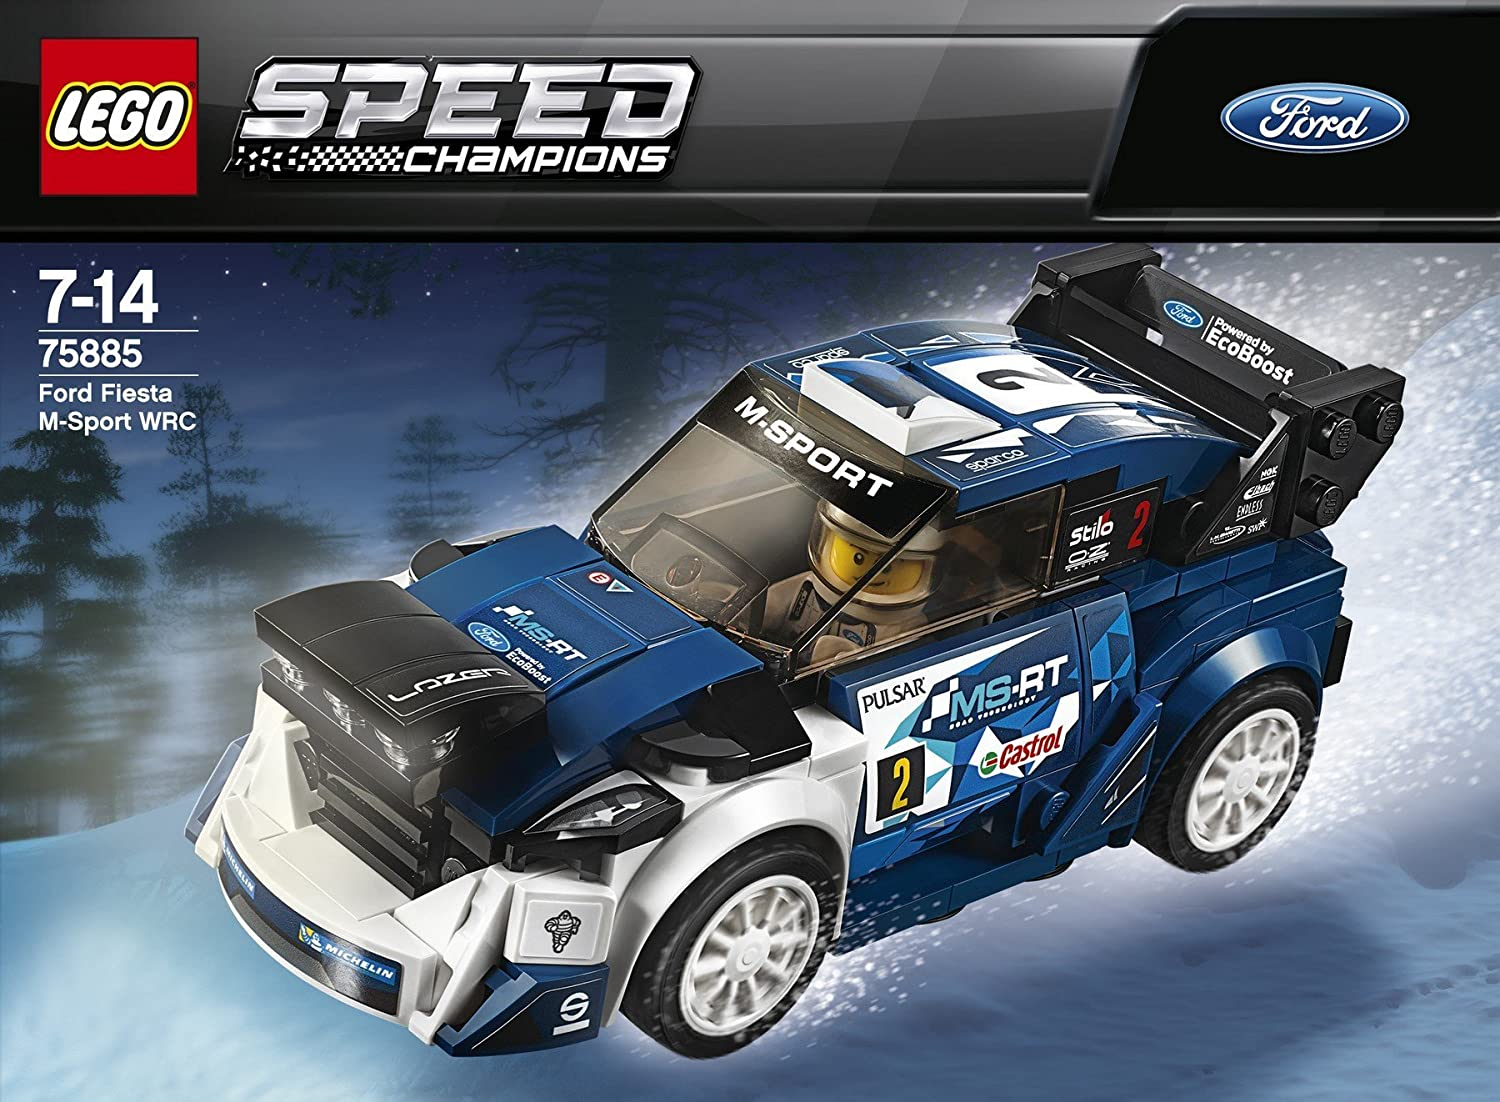 Amazon.com: Lego Speed Champions 75885 Ford Fiesta M-Sport WRC: Toys & Games